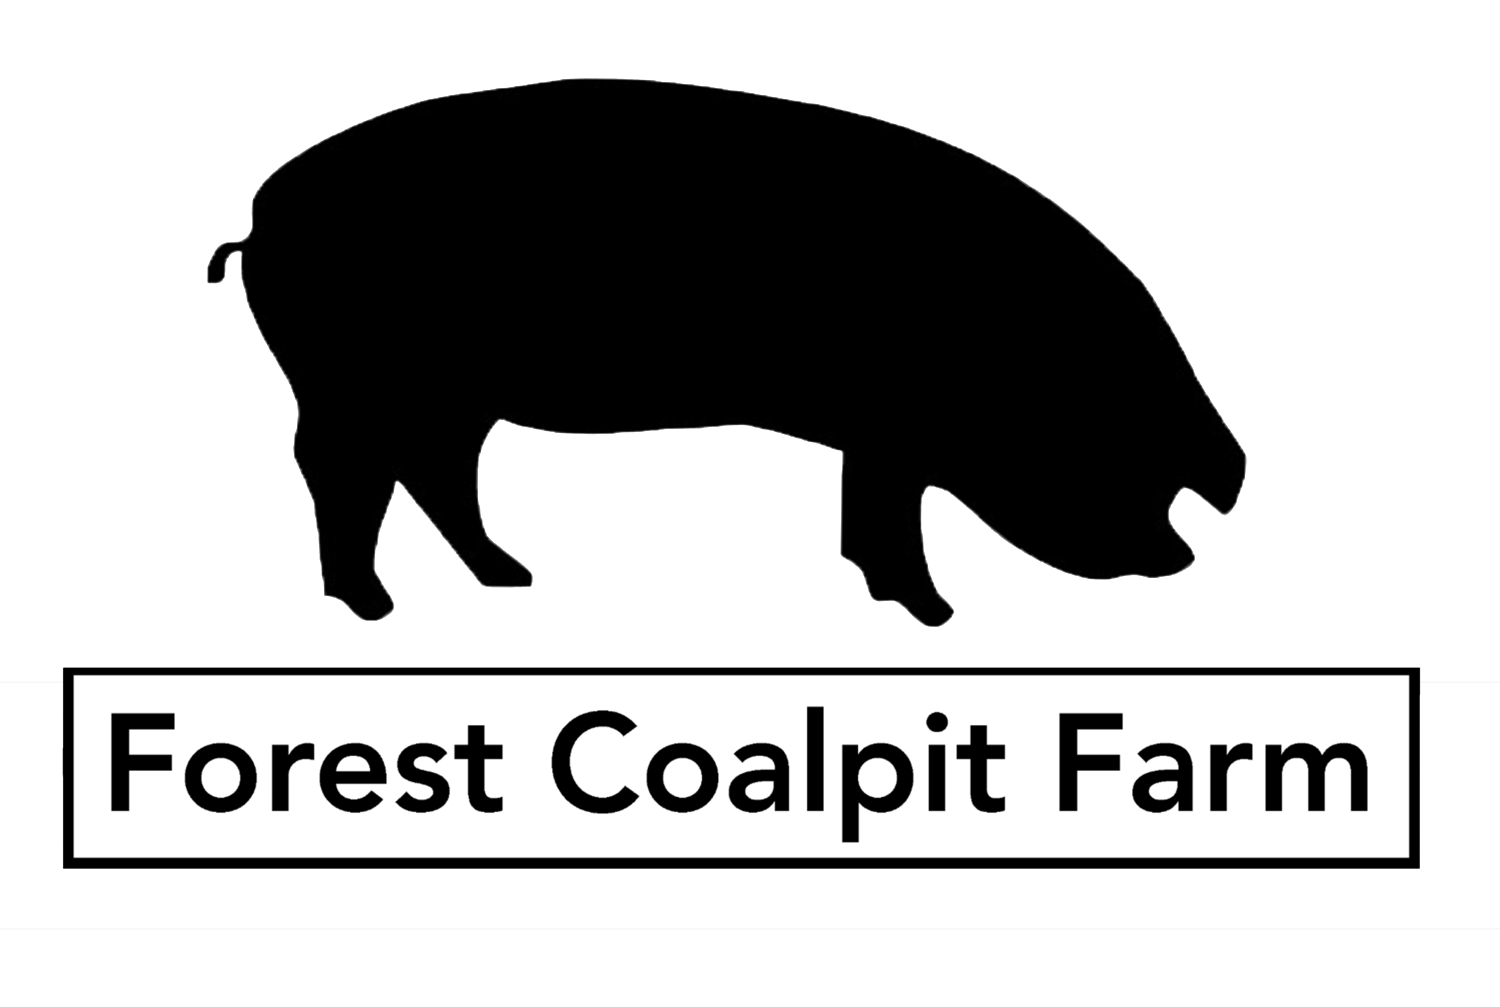 Forest Coalpit Farm